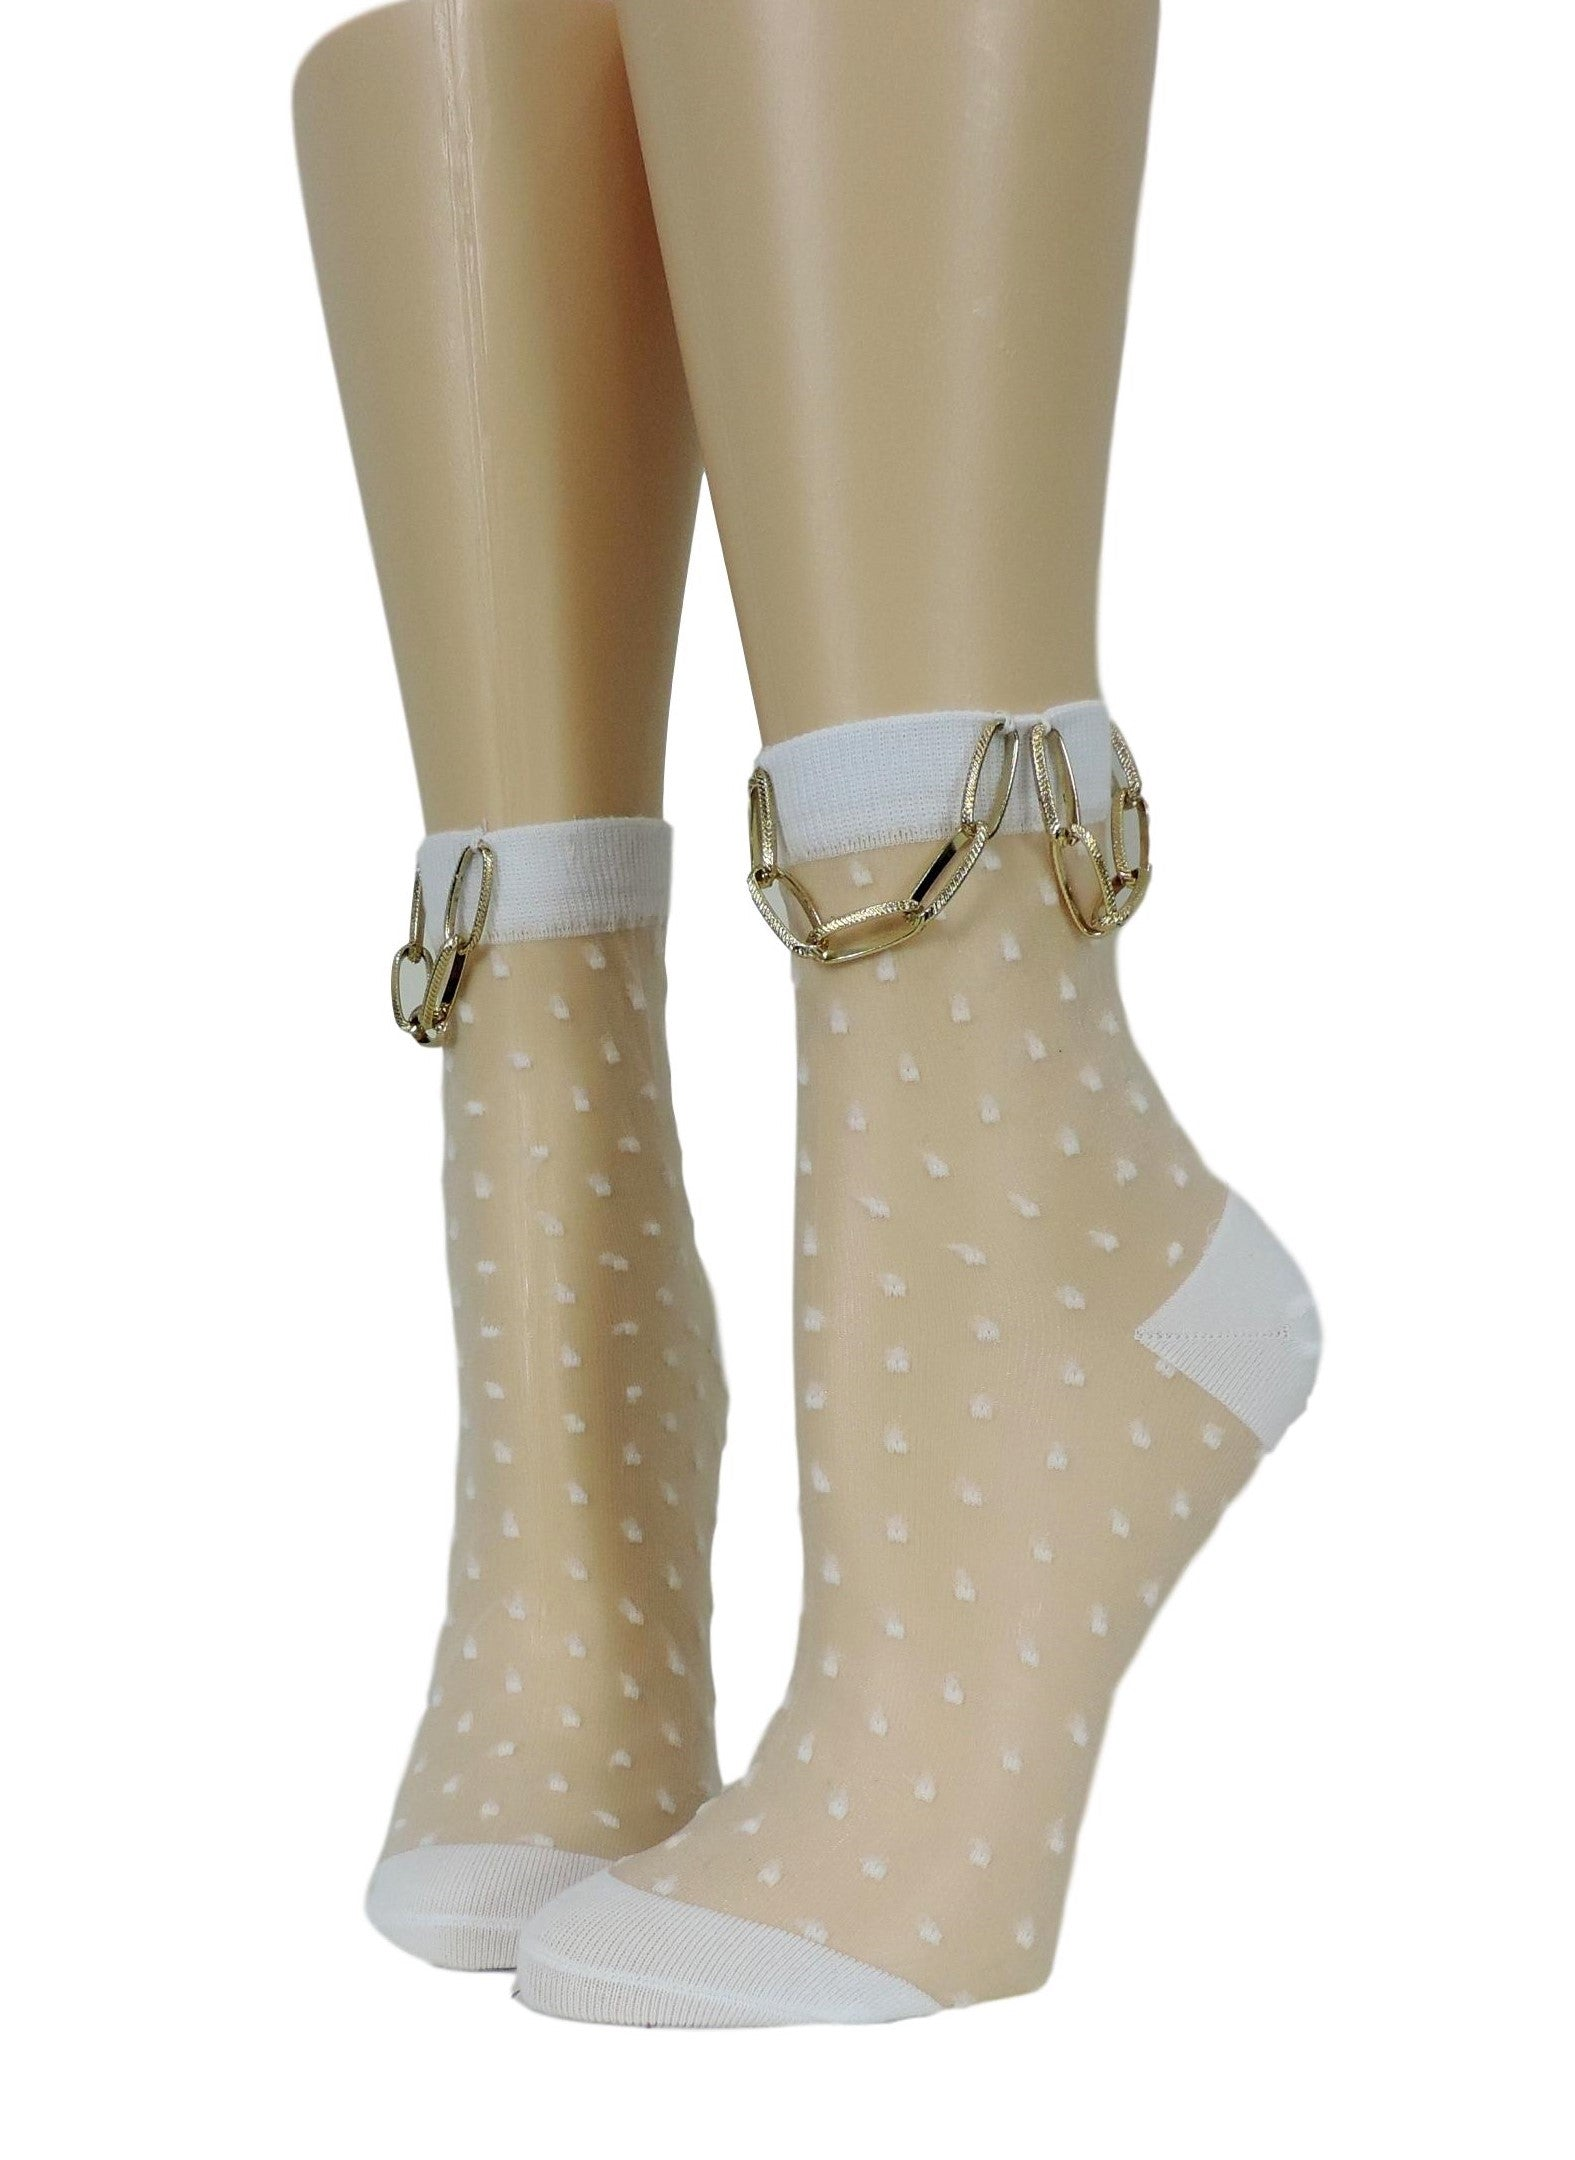 Polka Dot Hip Hop Socks with Chain - Global Trendz Fashion®